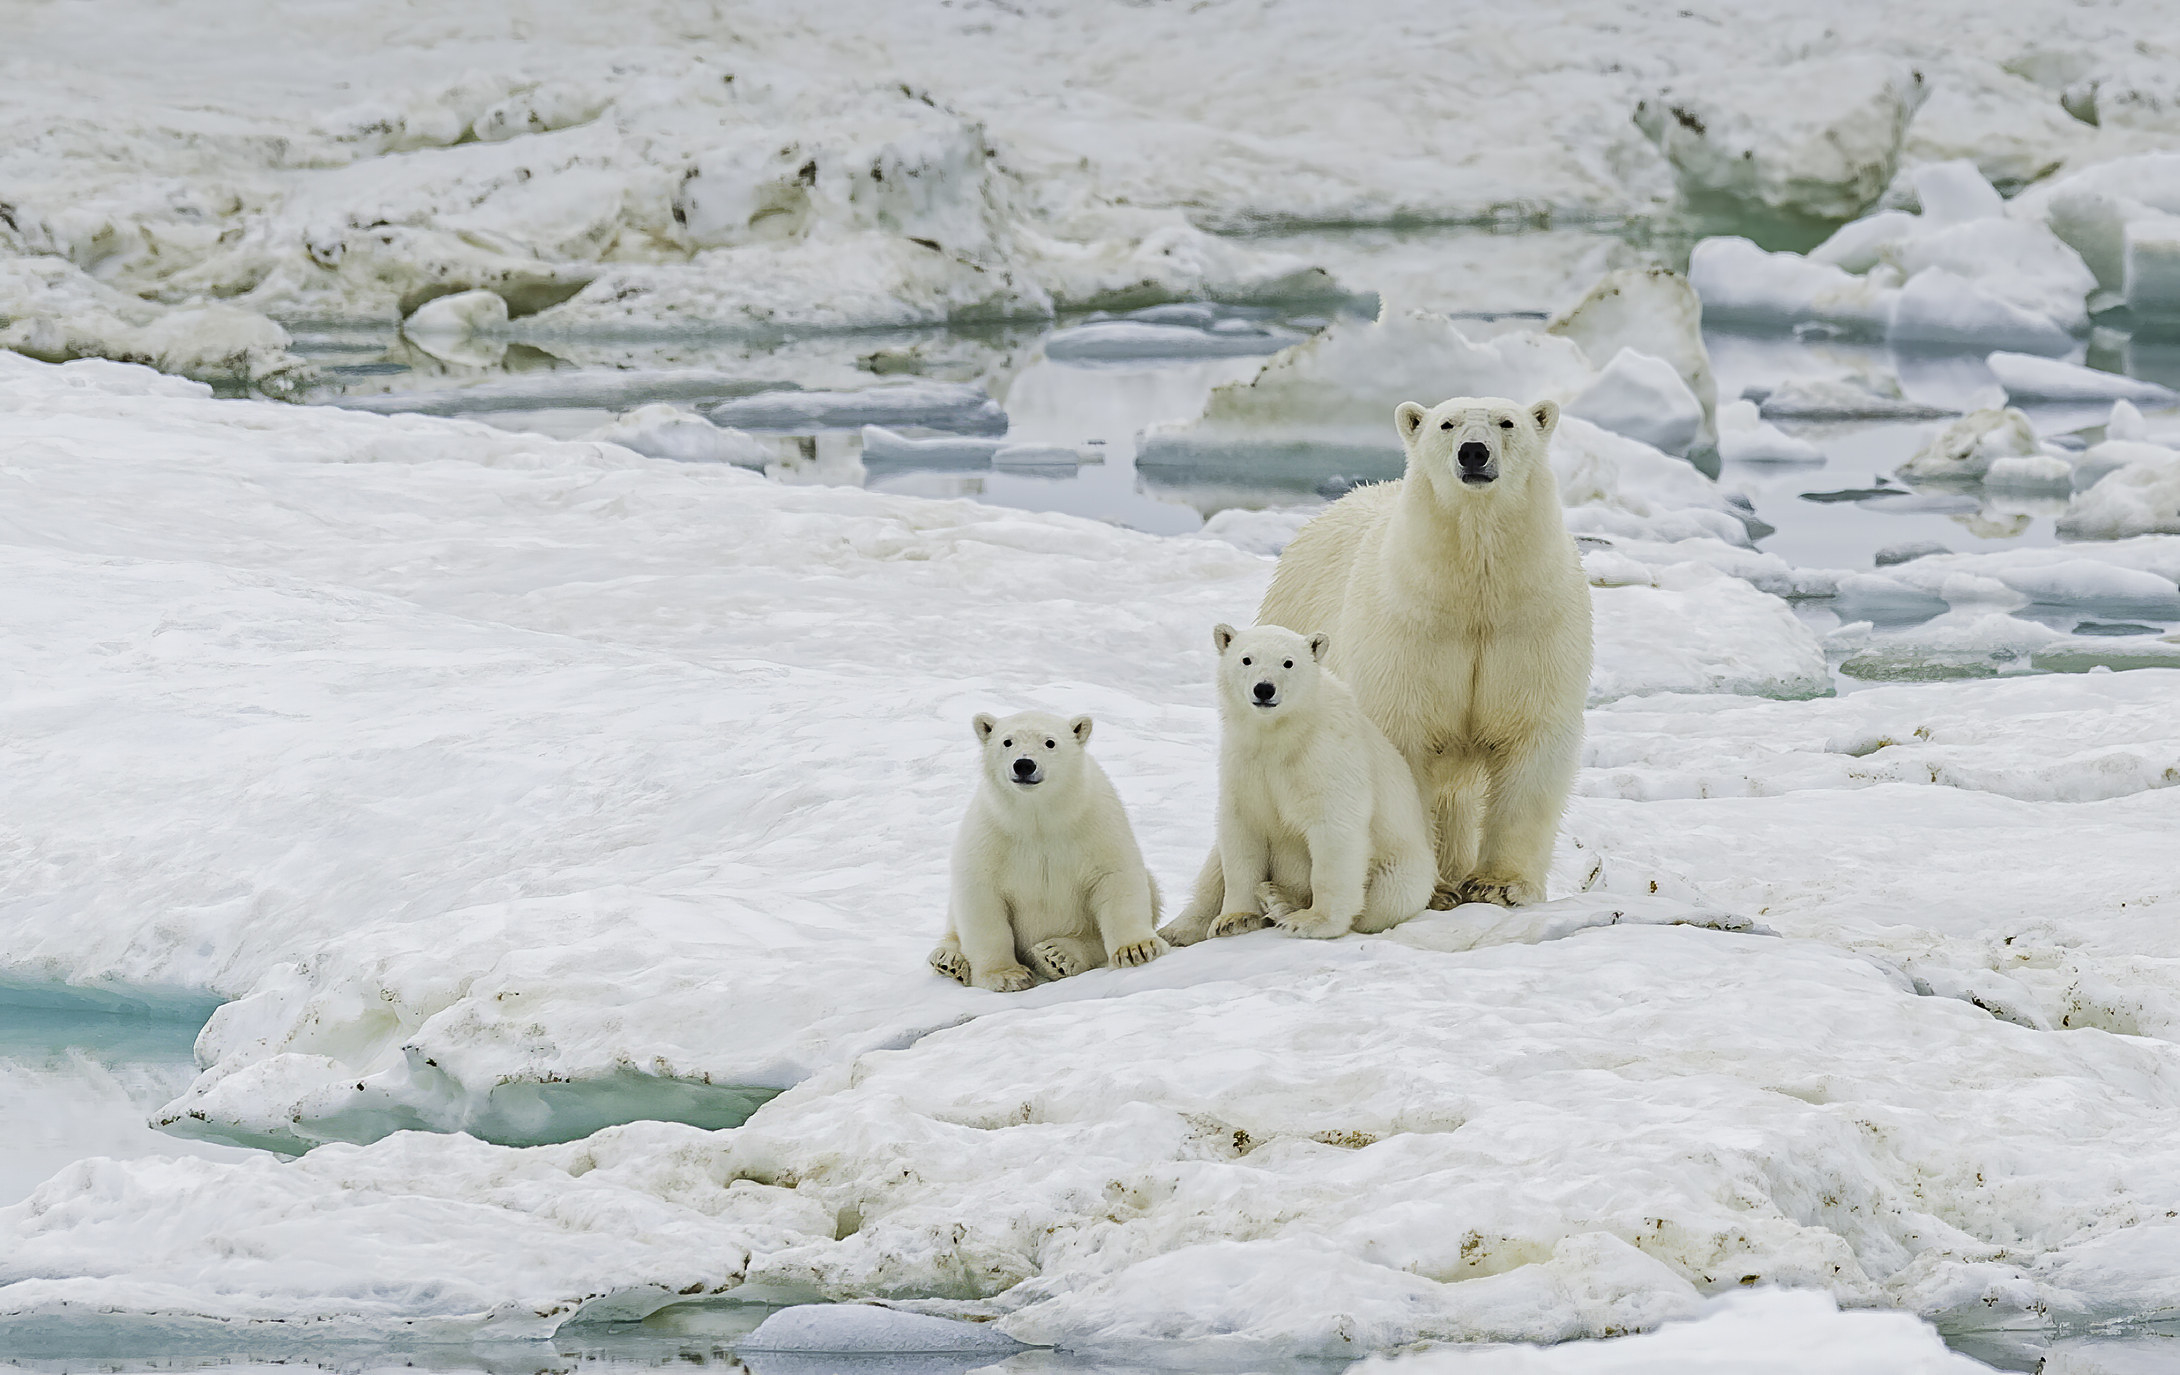 A mother and two young polar bear cubs on the snow